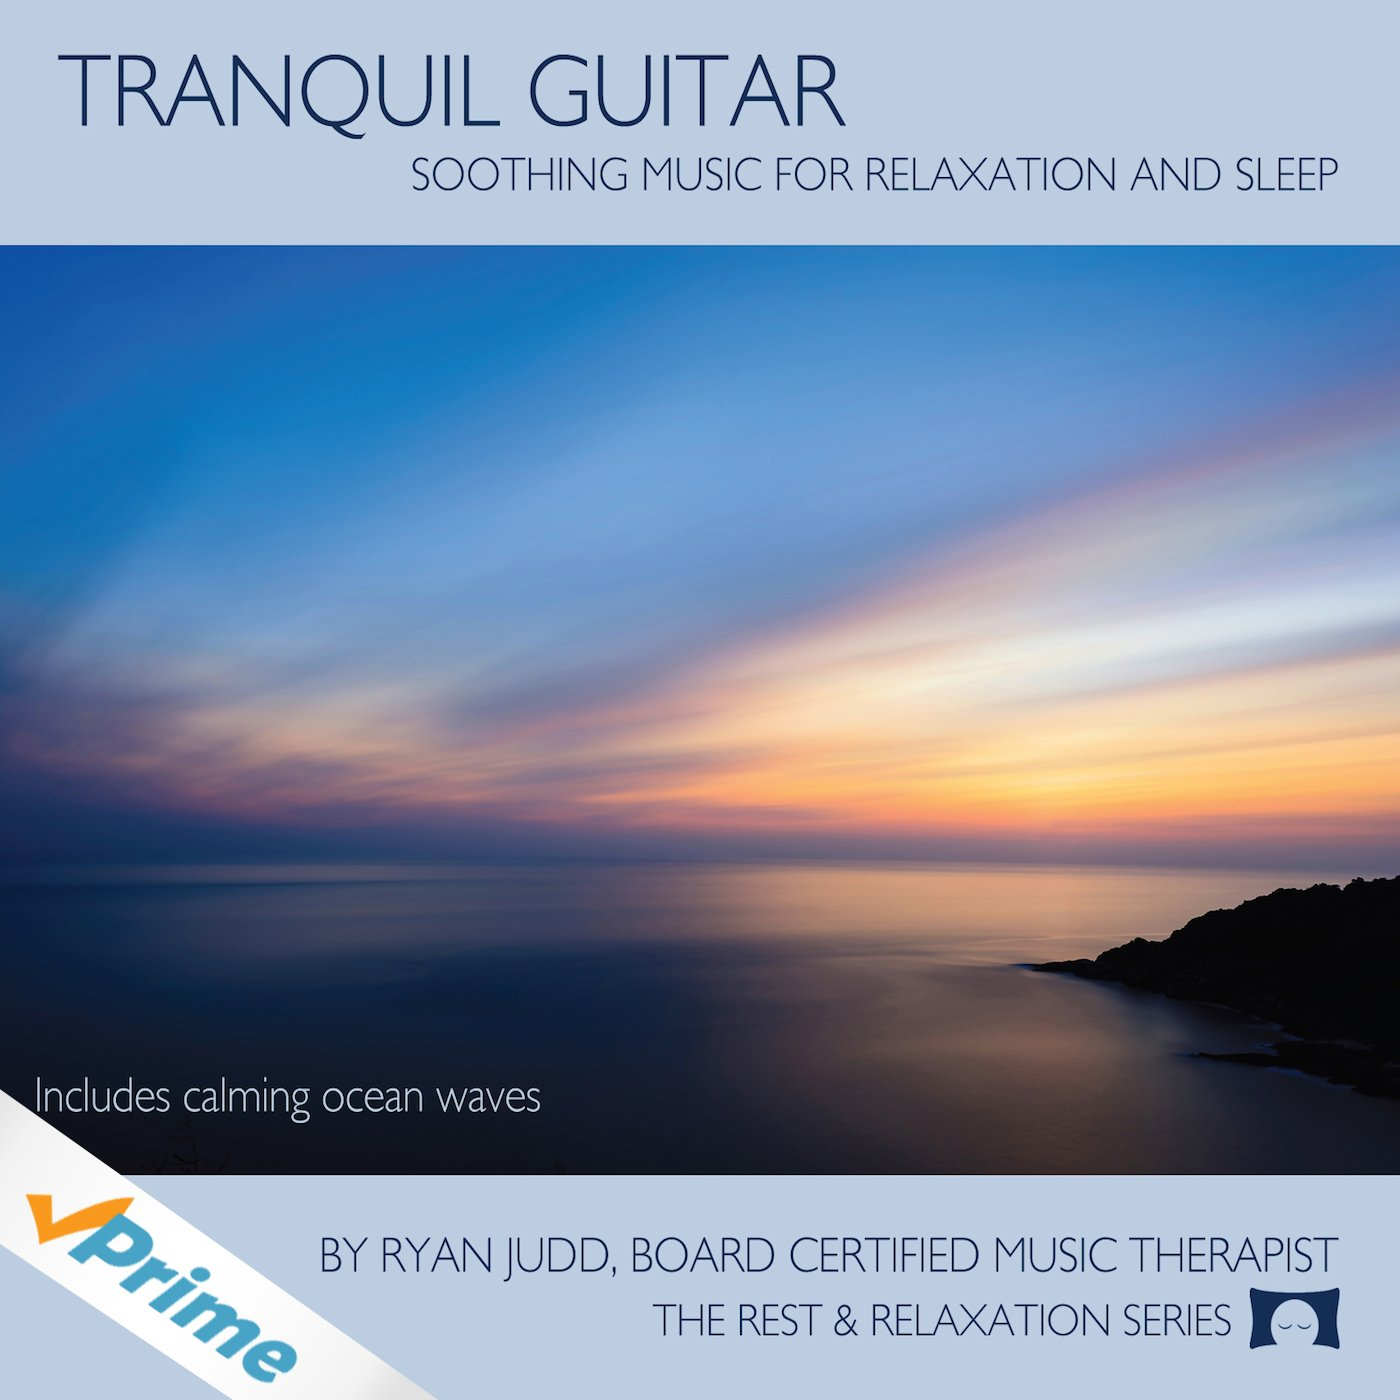 Tranquil Guitar CD - Soothing Music